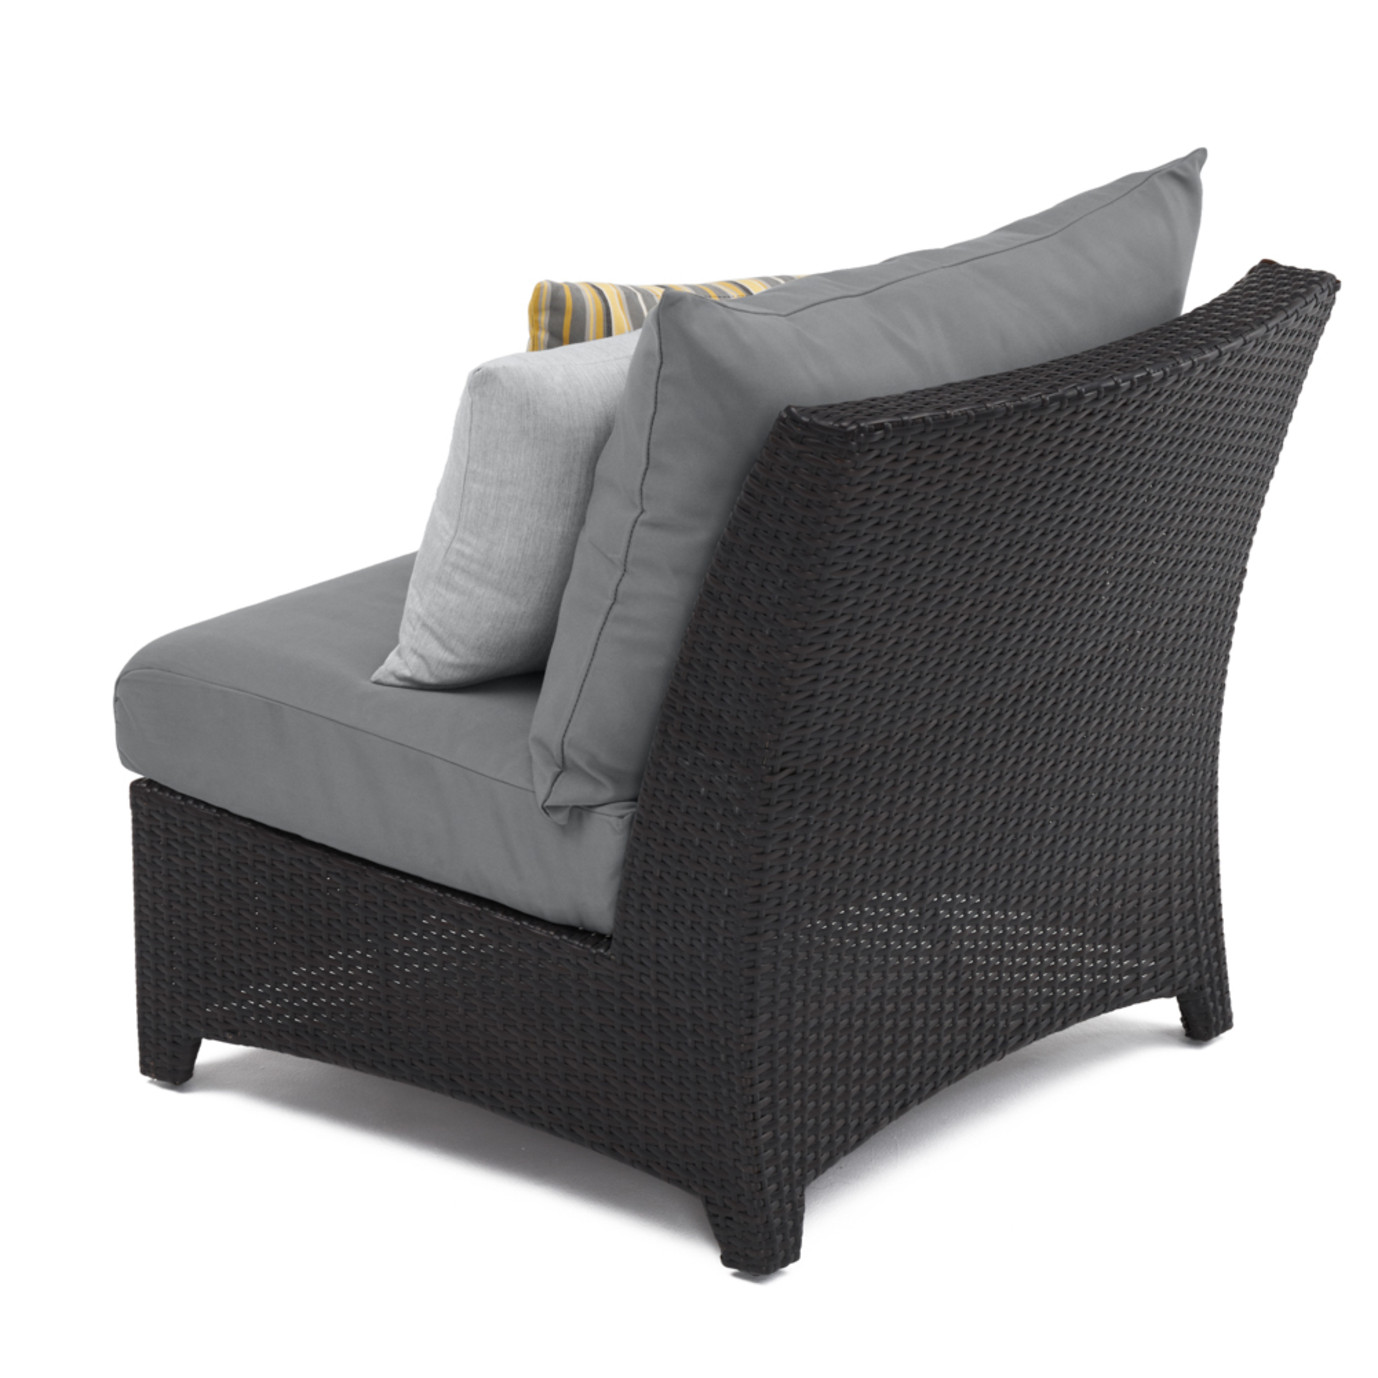 Deco™ Armless Chairs - Charcoal Grey